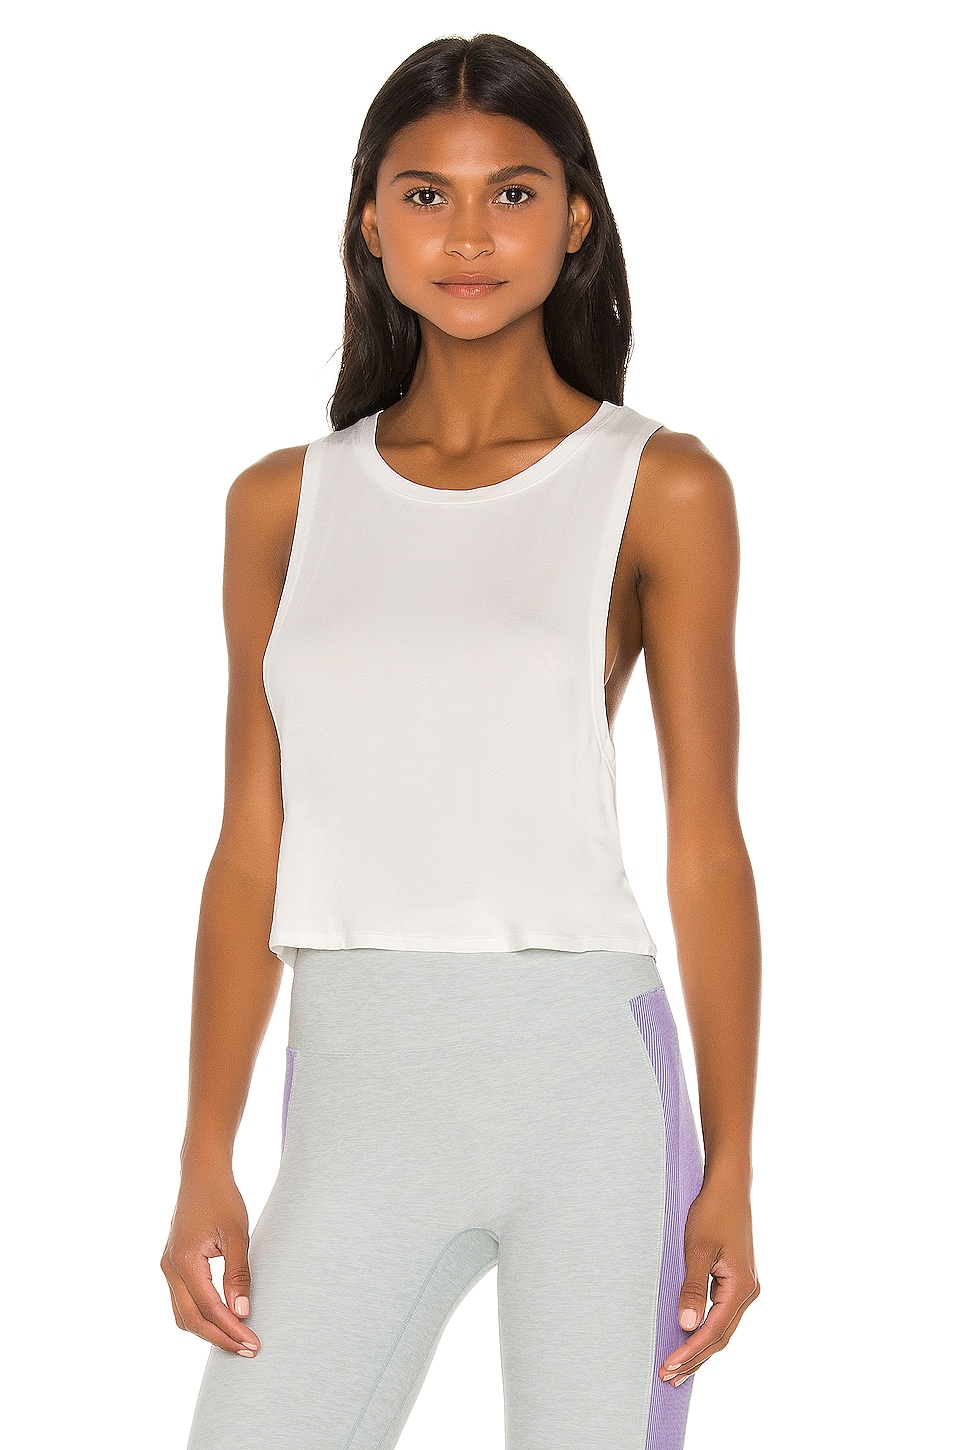 lovewave The Miller Top in White